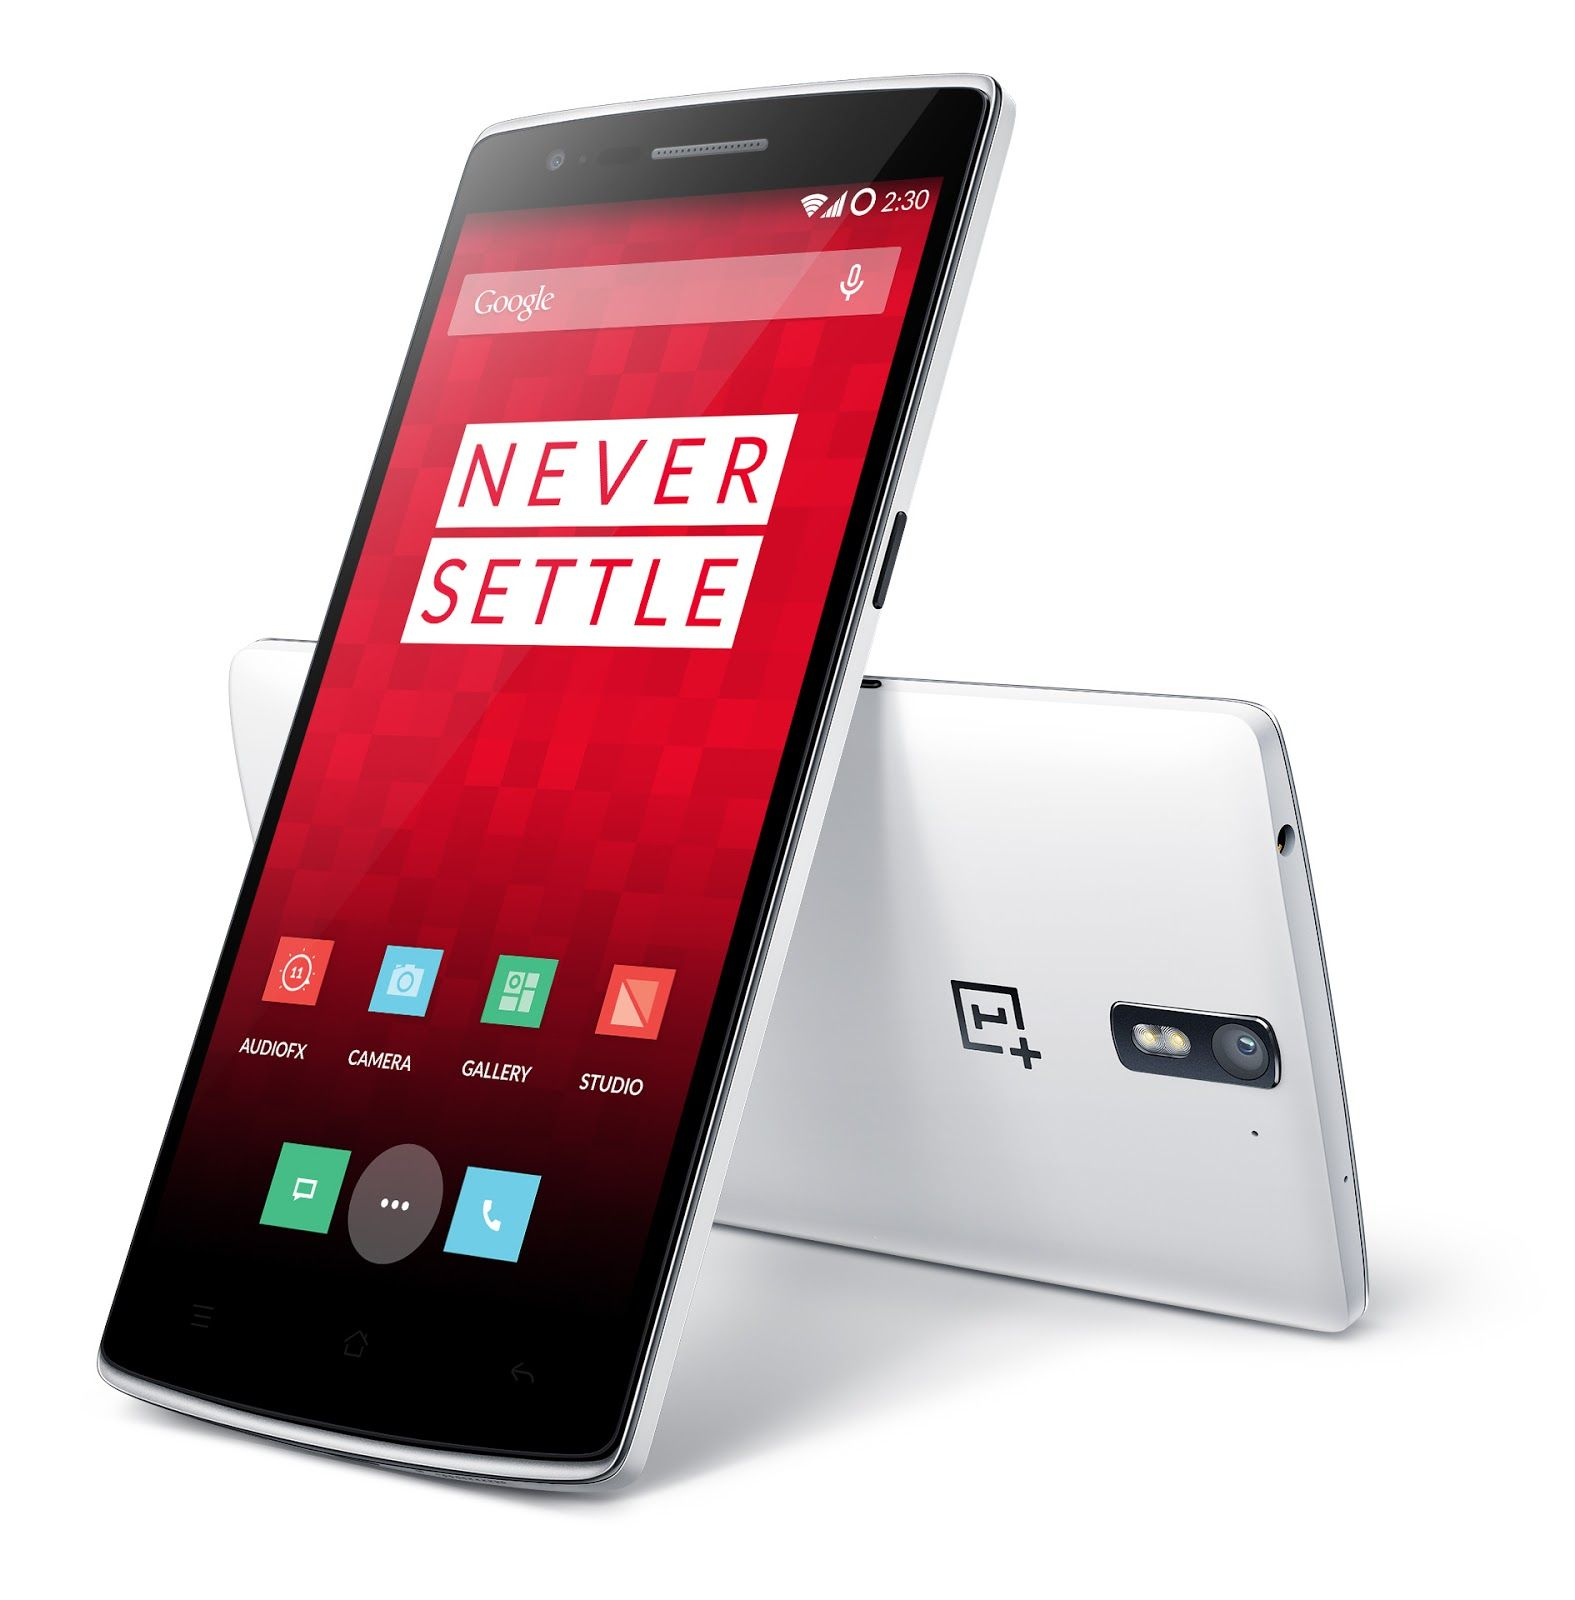 Permanently Moved to OnePlus One